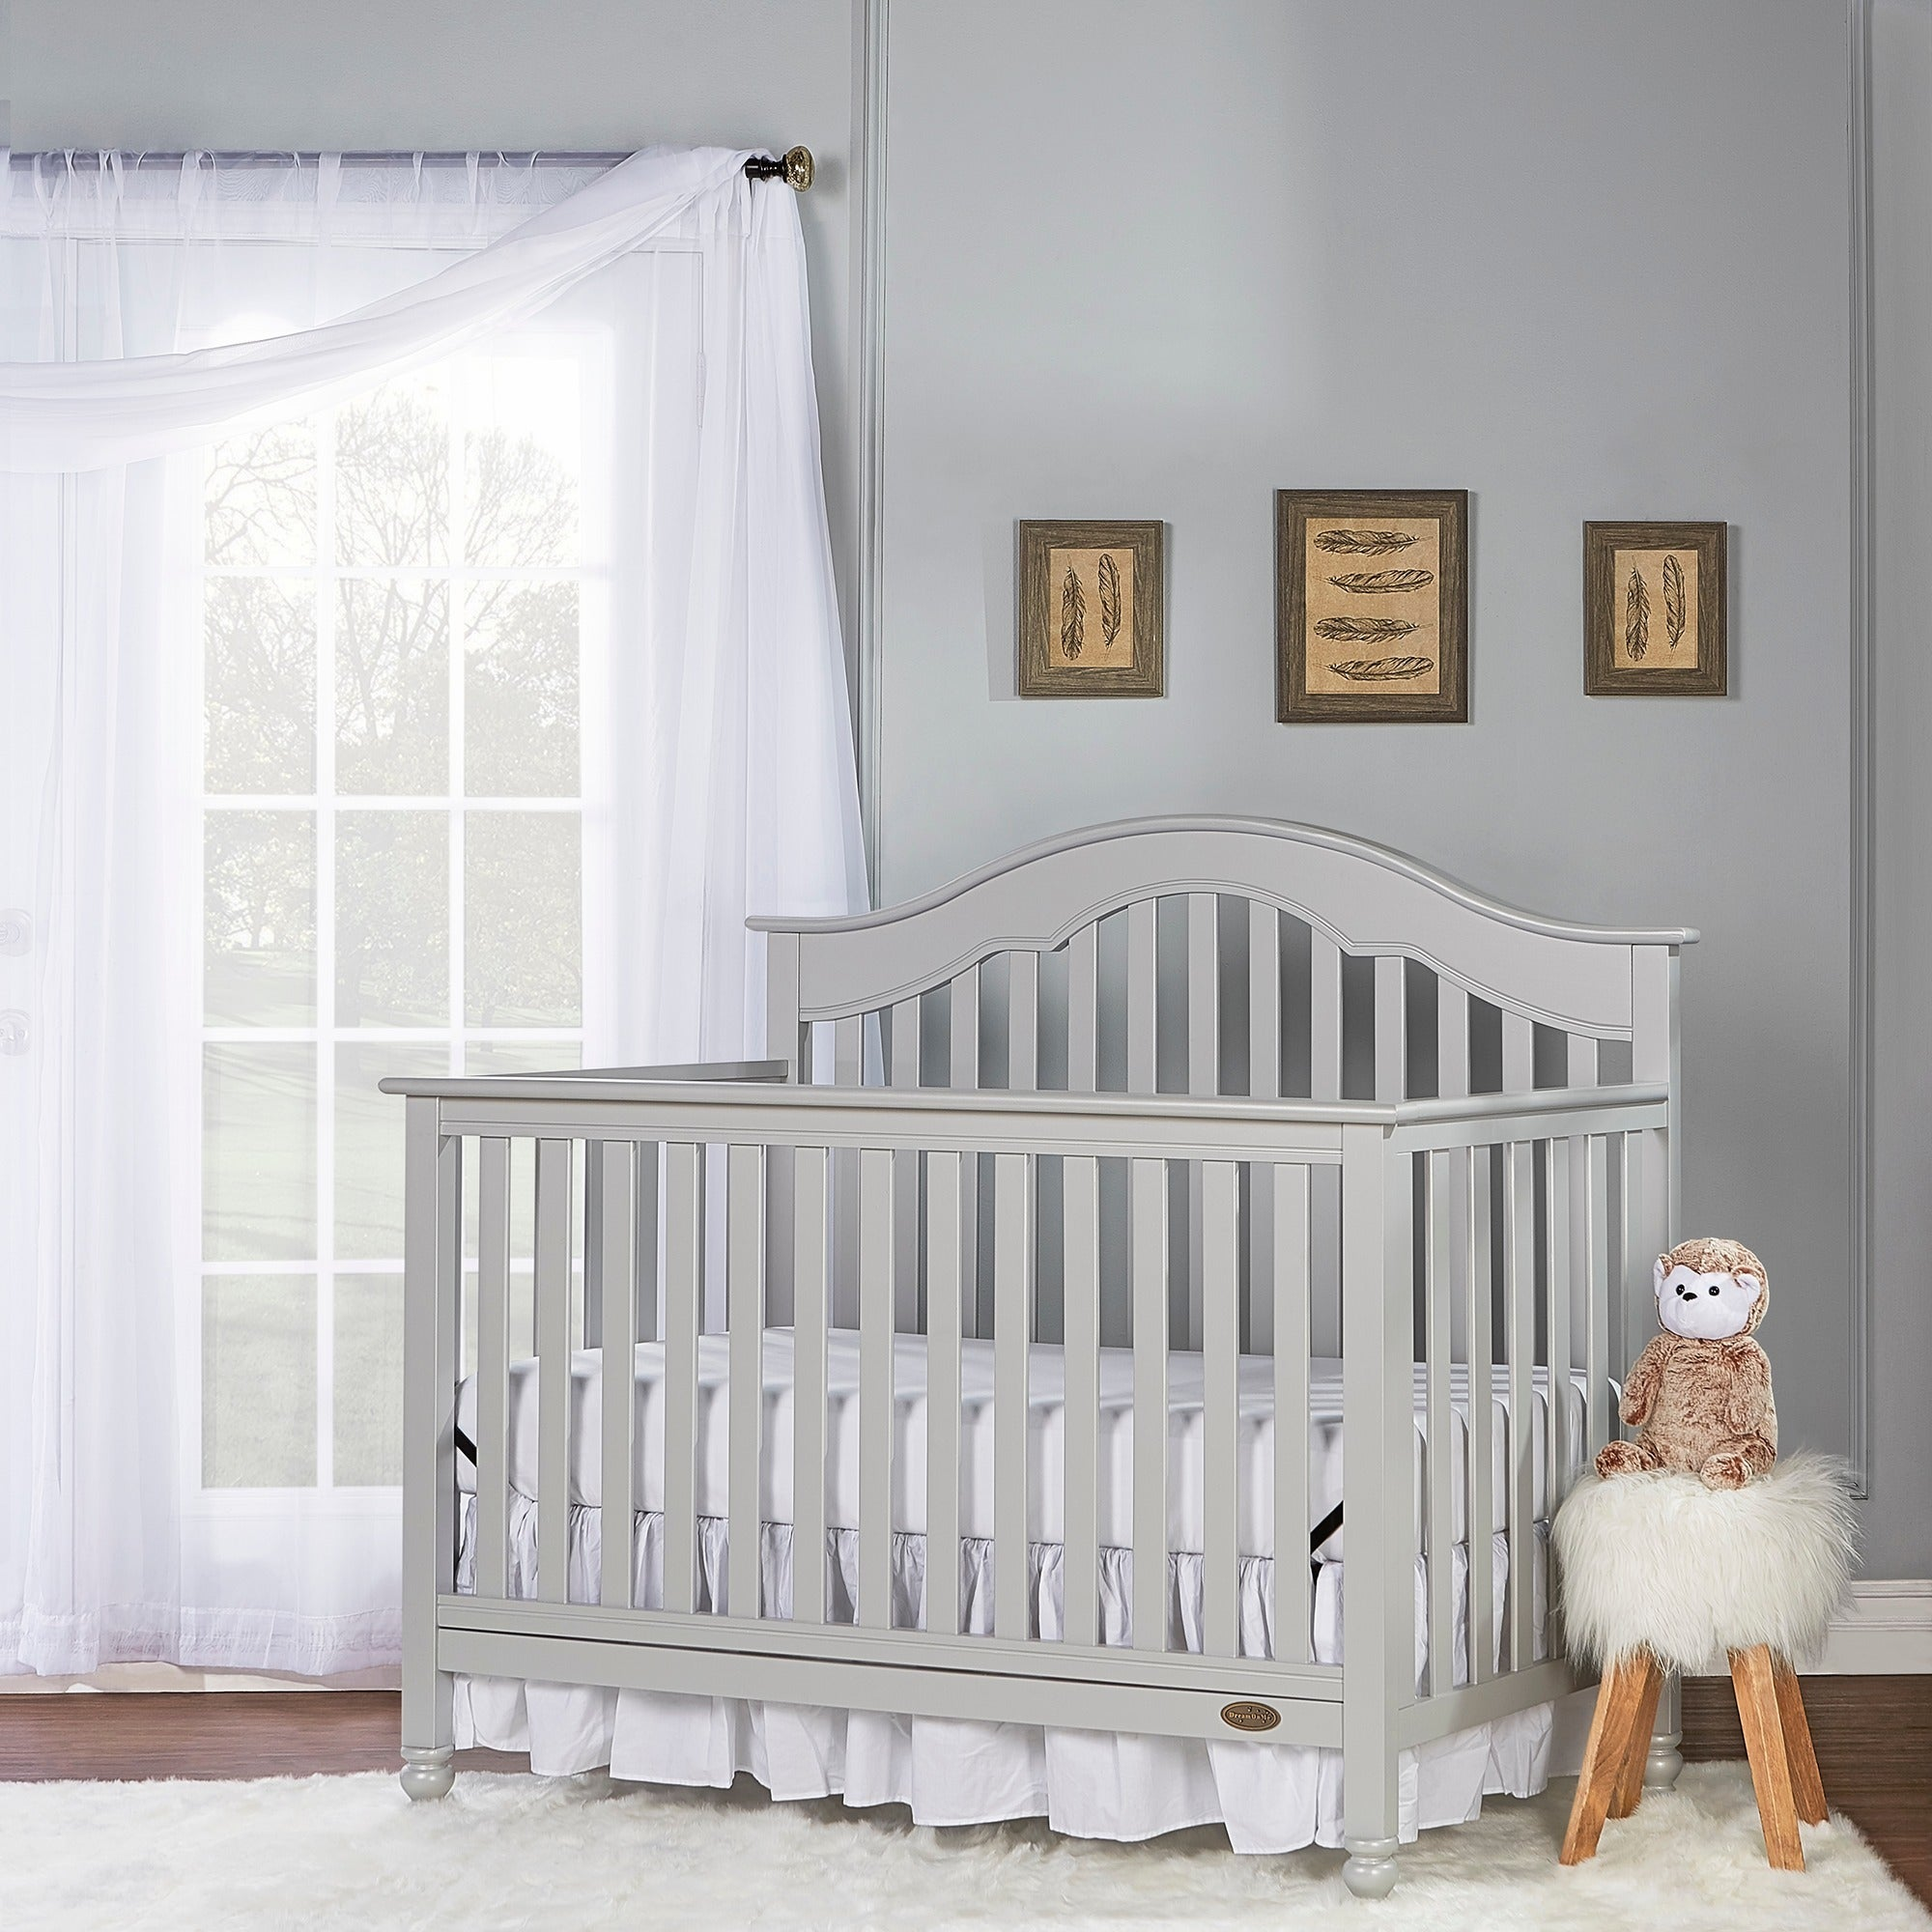 babies s cache cribs baby kit lifetime r conversion images convertible larger dream essentials curved us view l crib